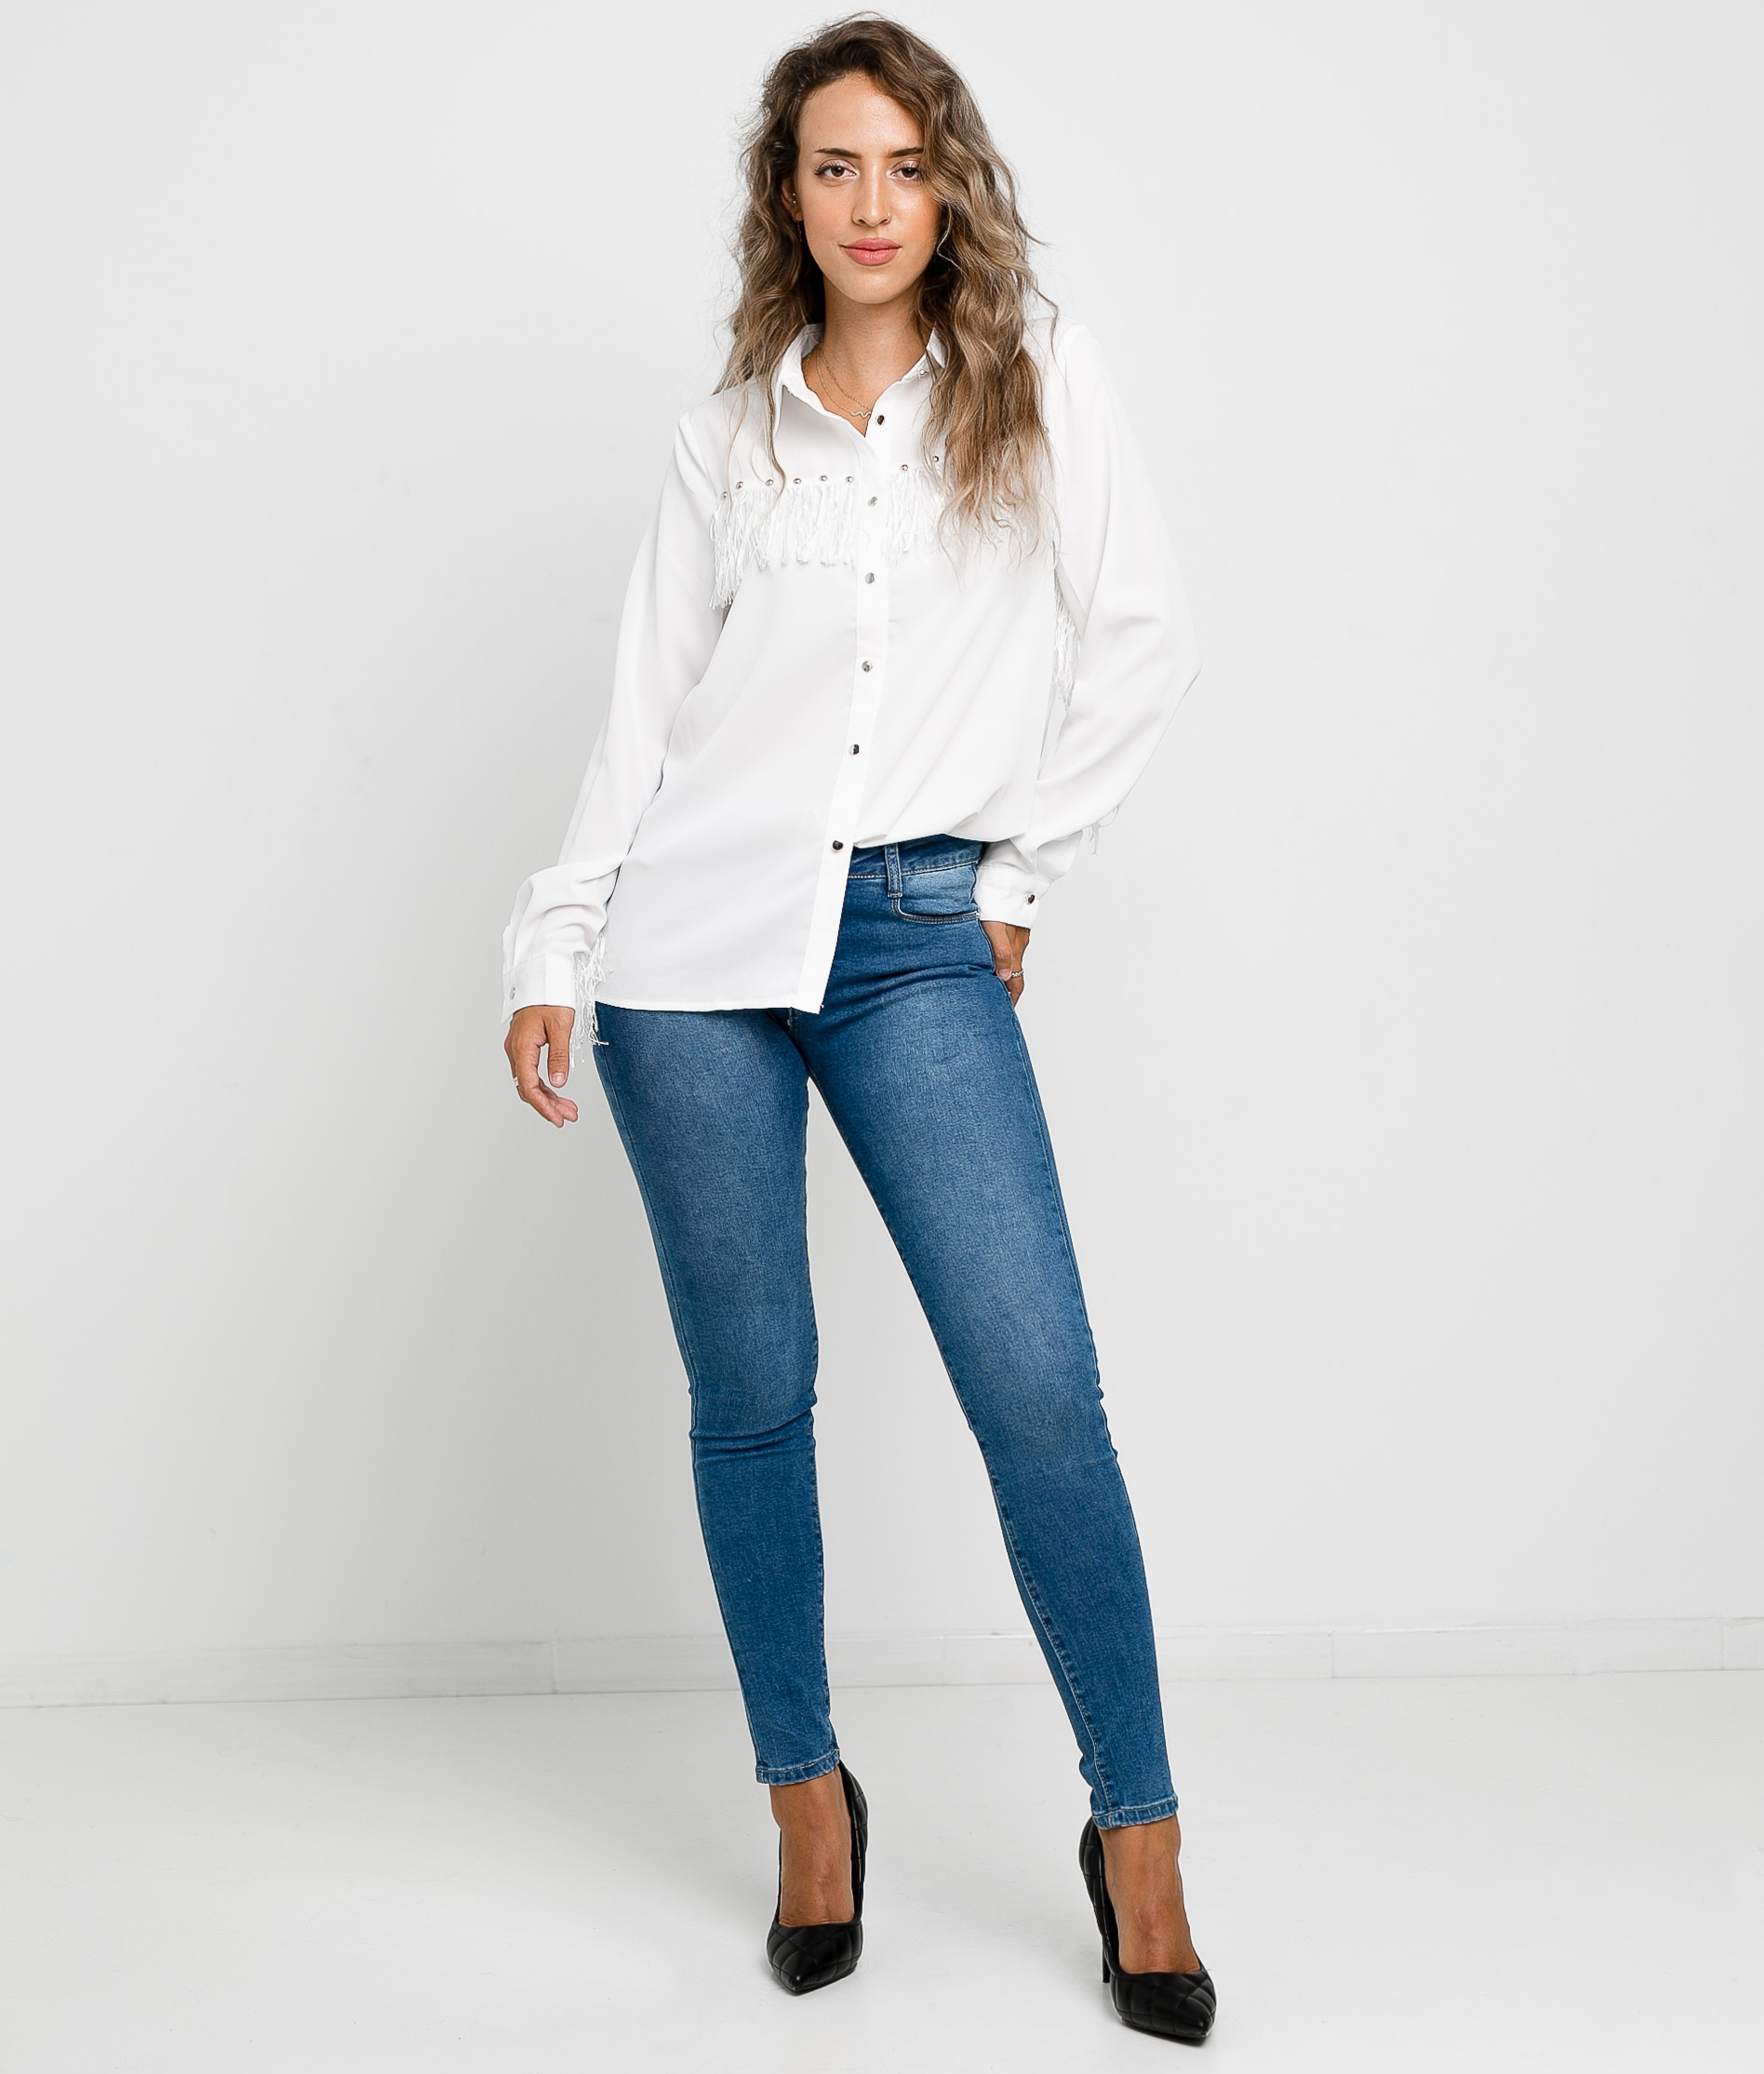 Blouse Pumples - Blanco